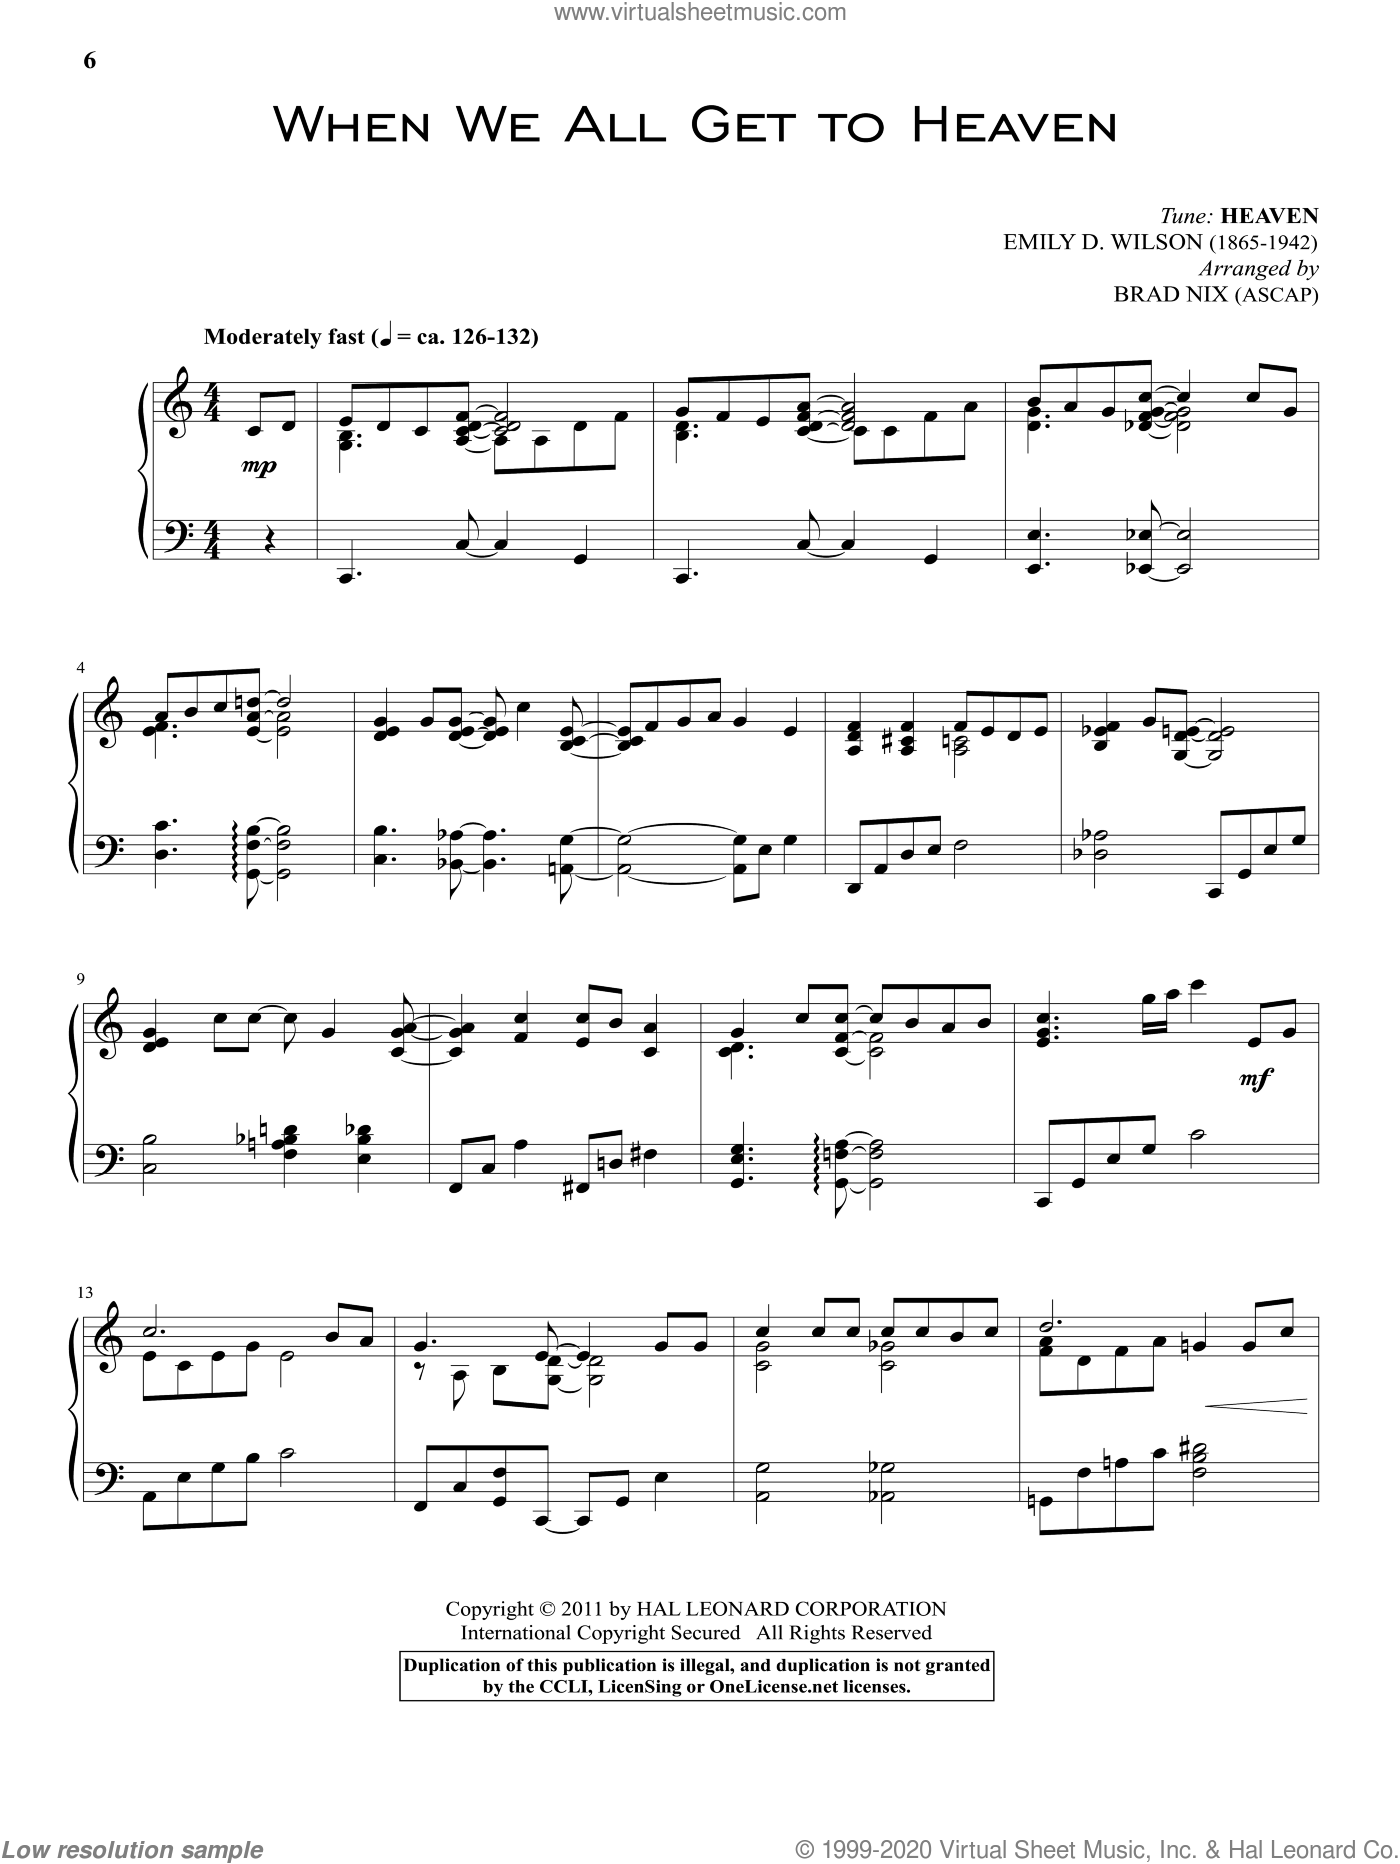 When We All Get To Heaven sheet music for piano solo by Eliza E. Hewitt and Emily D. Wilson, intermediate skill level